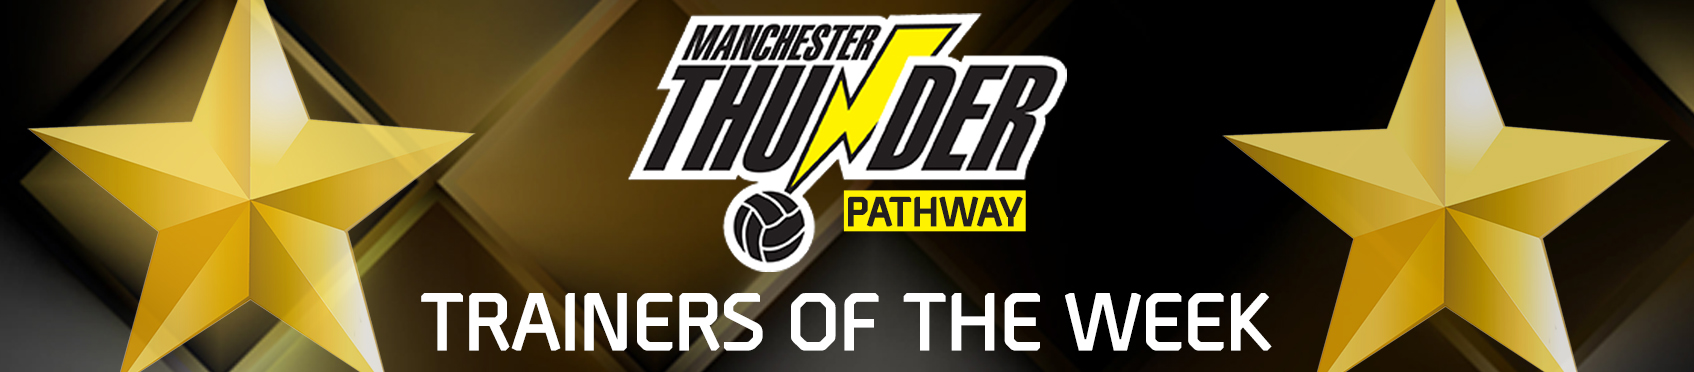 Thunder Pathway Trainers of the Week